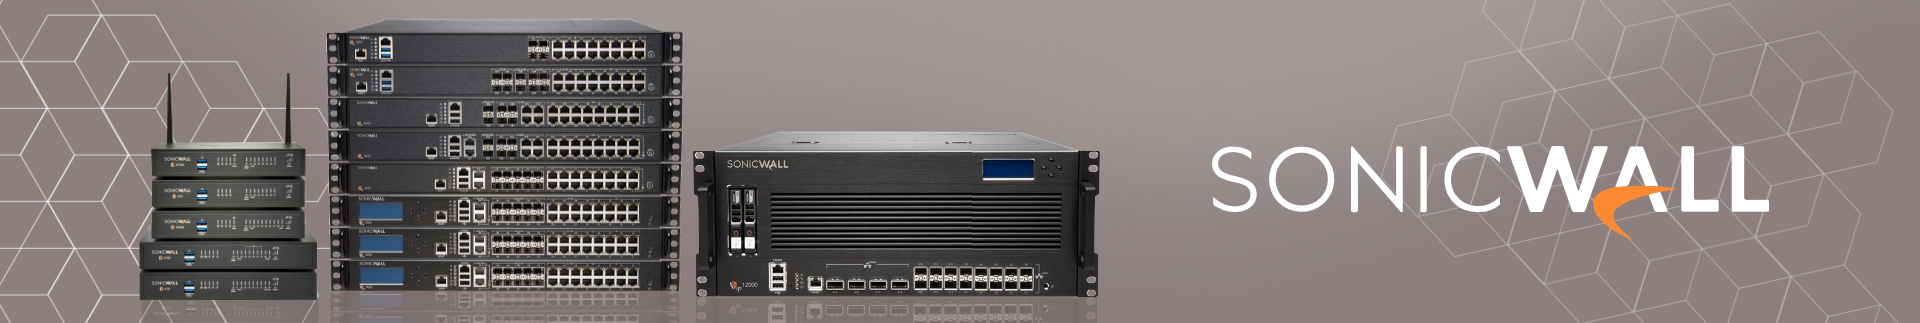 sonicwall banner